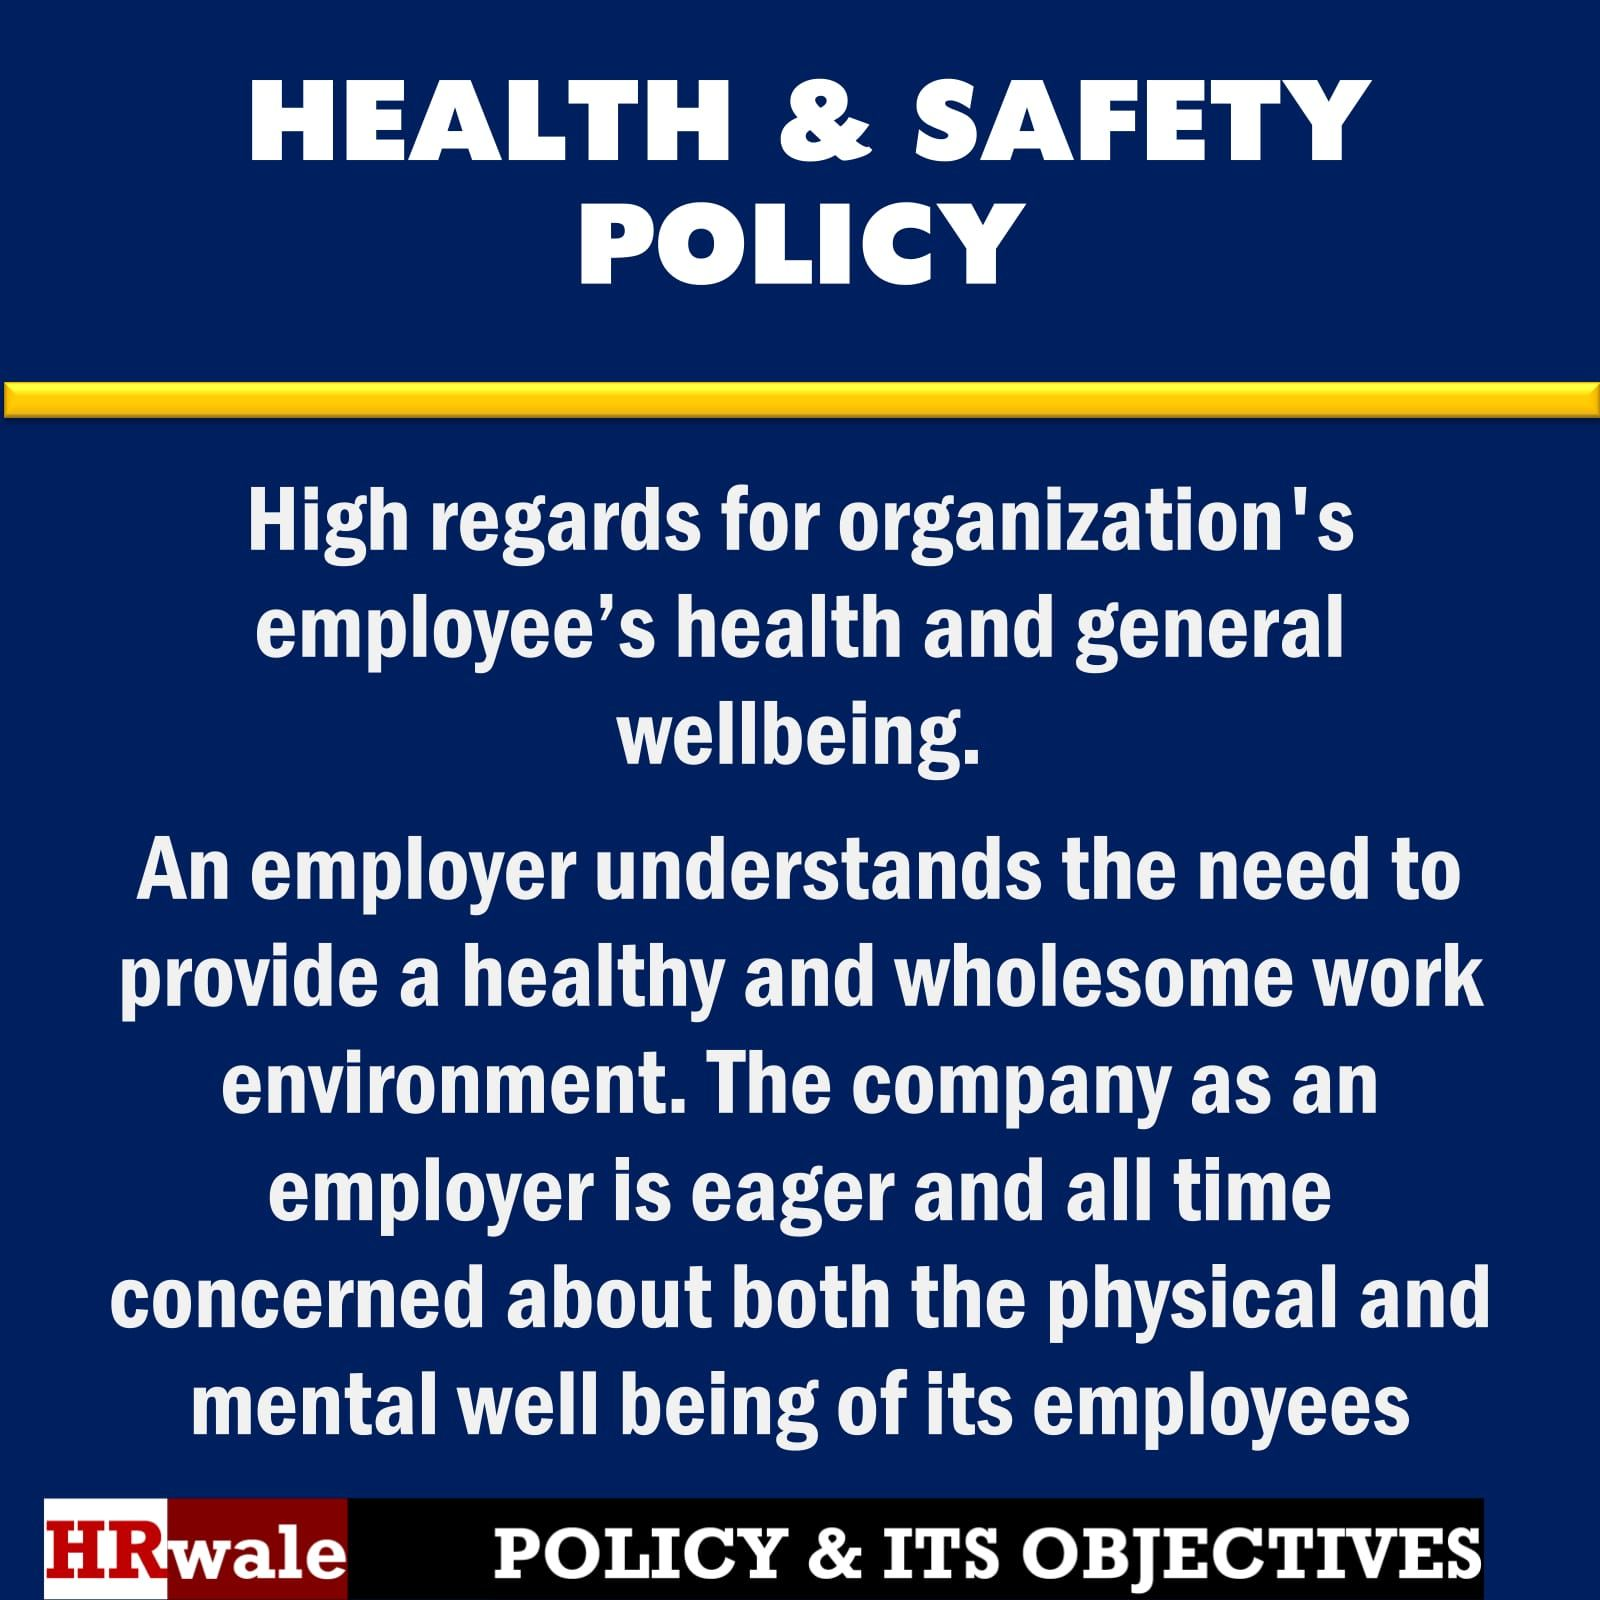 Health And Safety Policy  Policy Objective  Hr